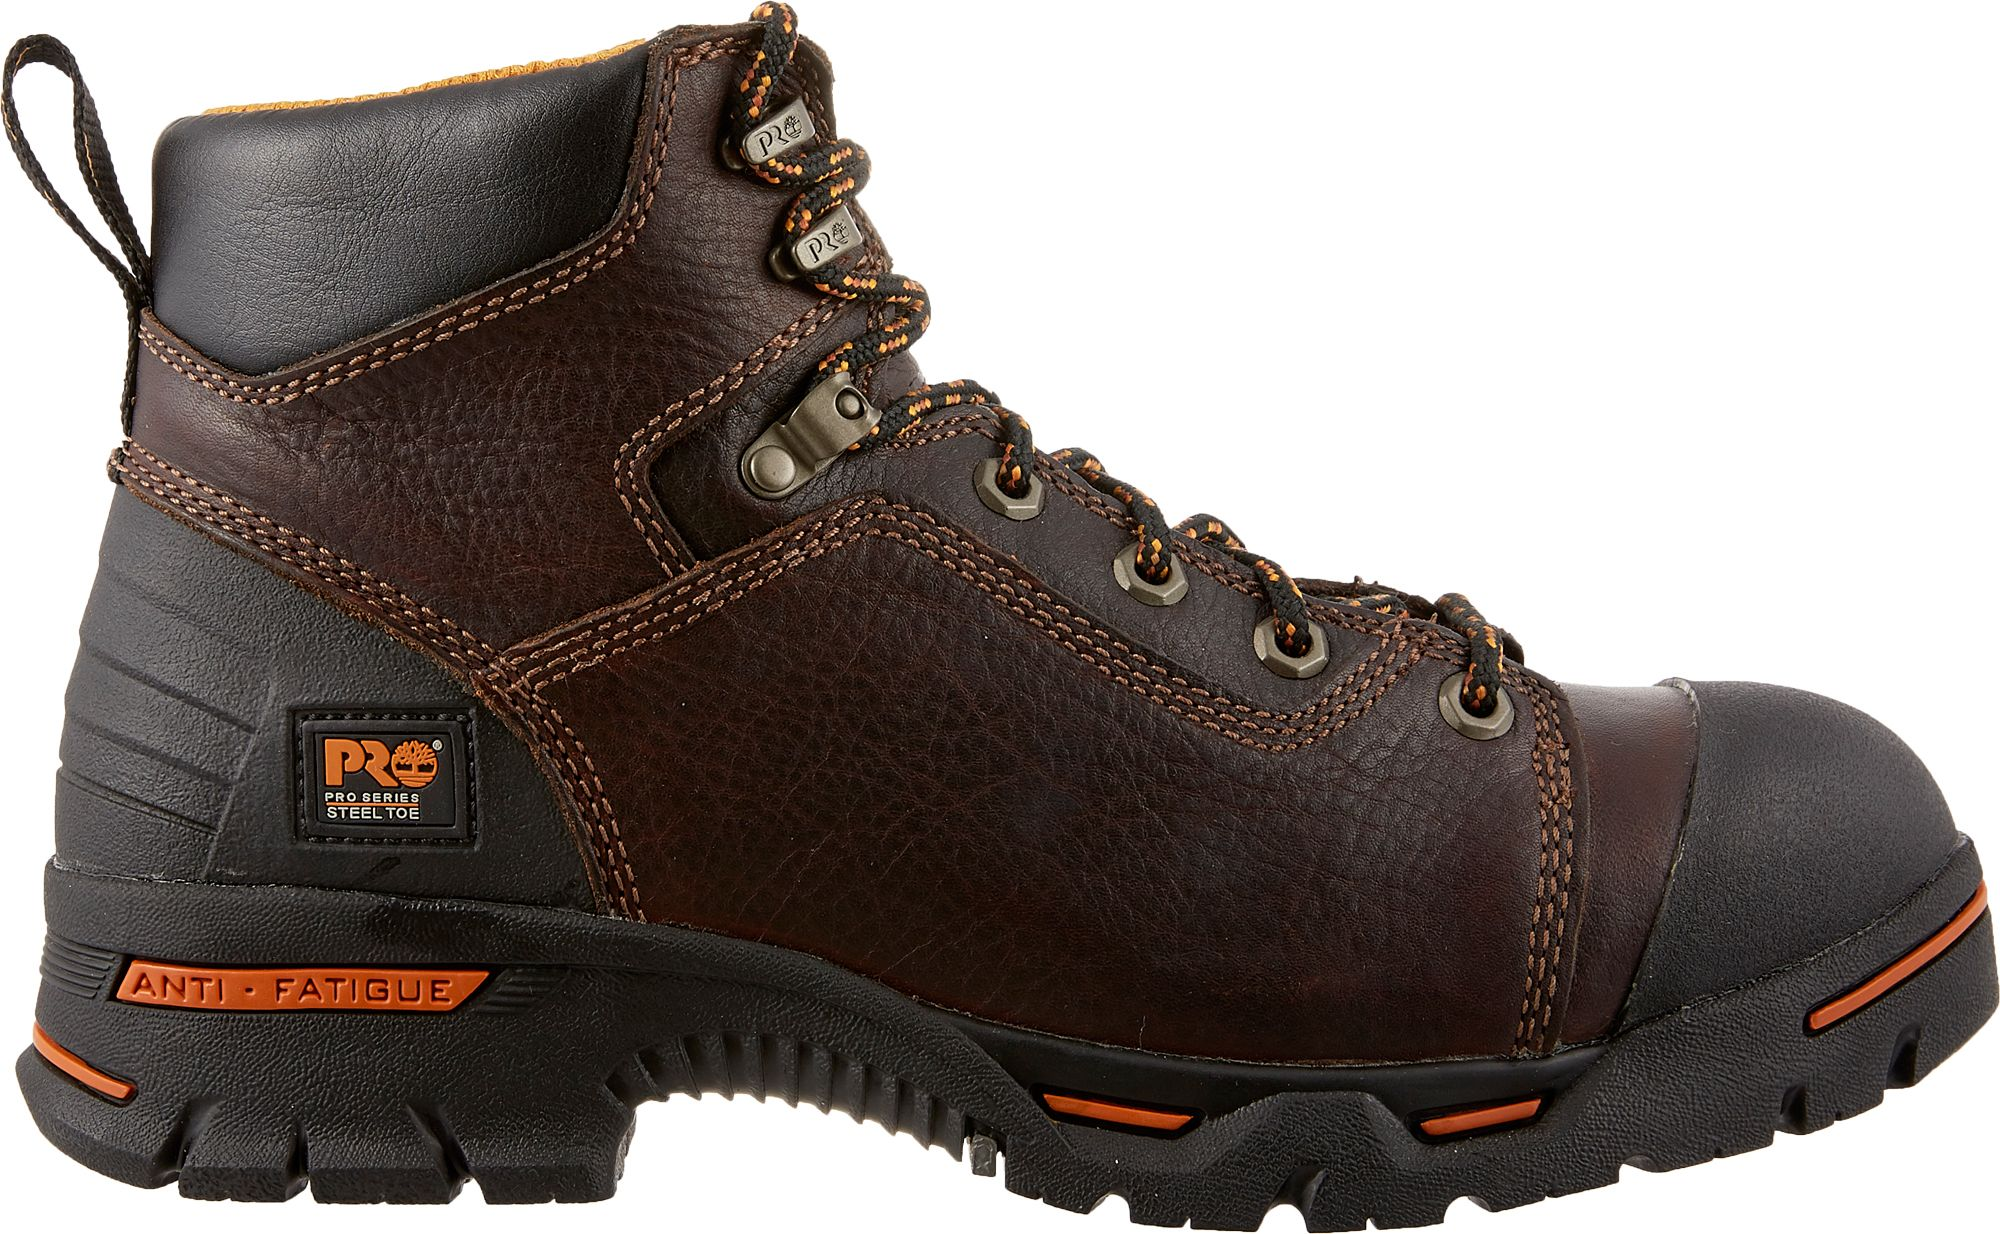 Timberland PRO Endurance PR 6'' Steel Toe Work Boots | DICK'S Sporting Goods